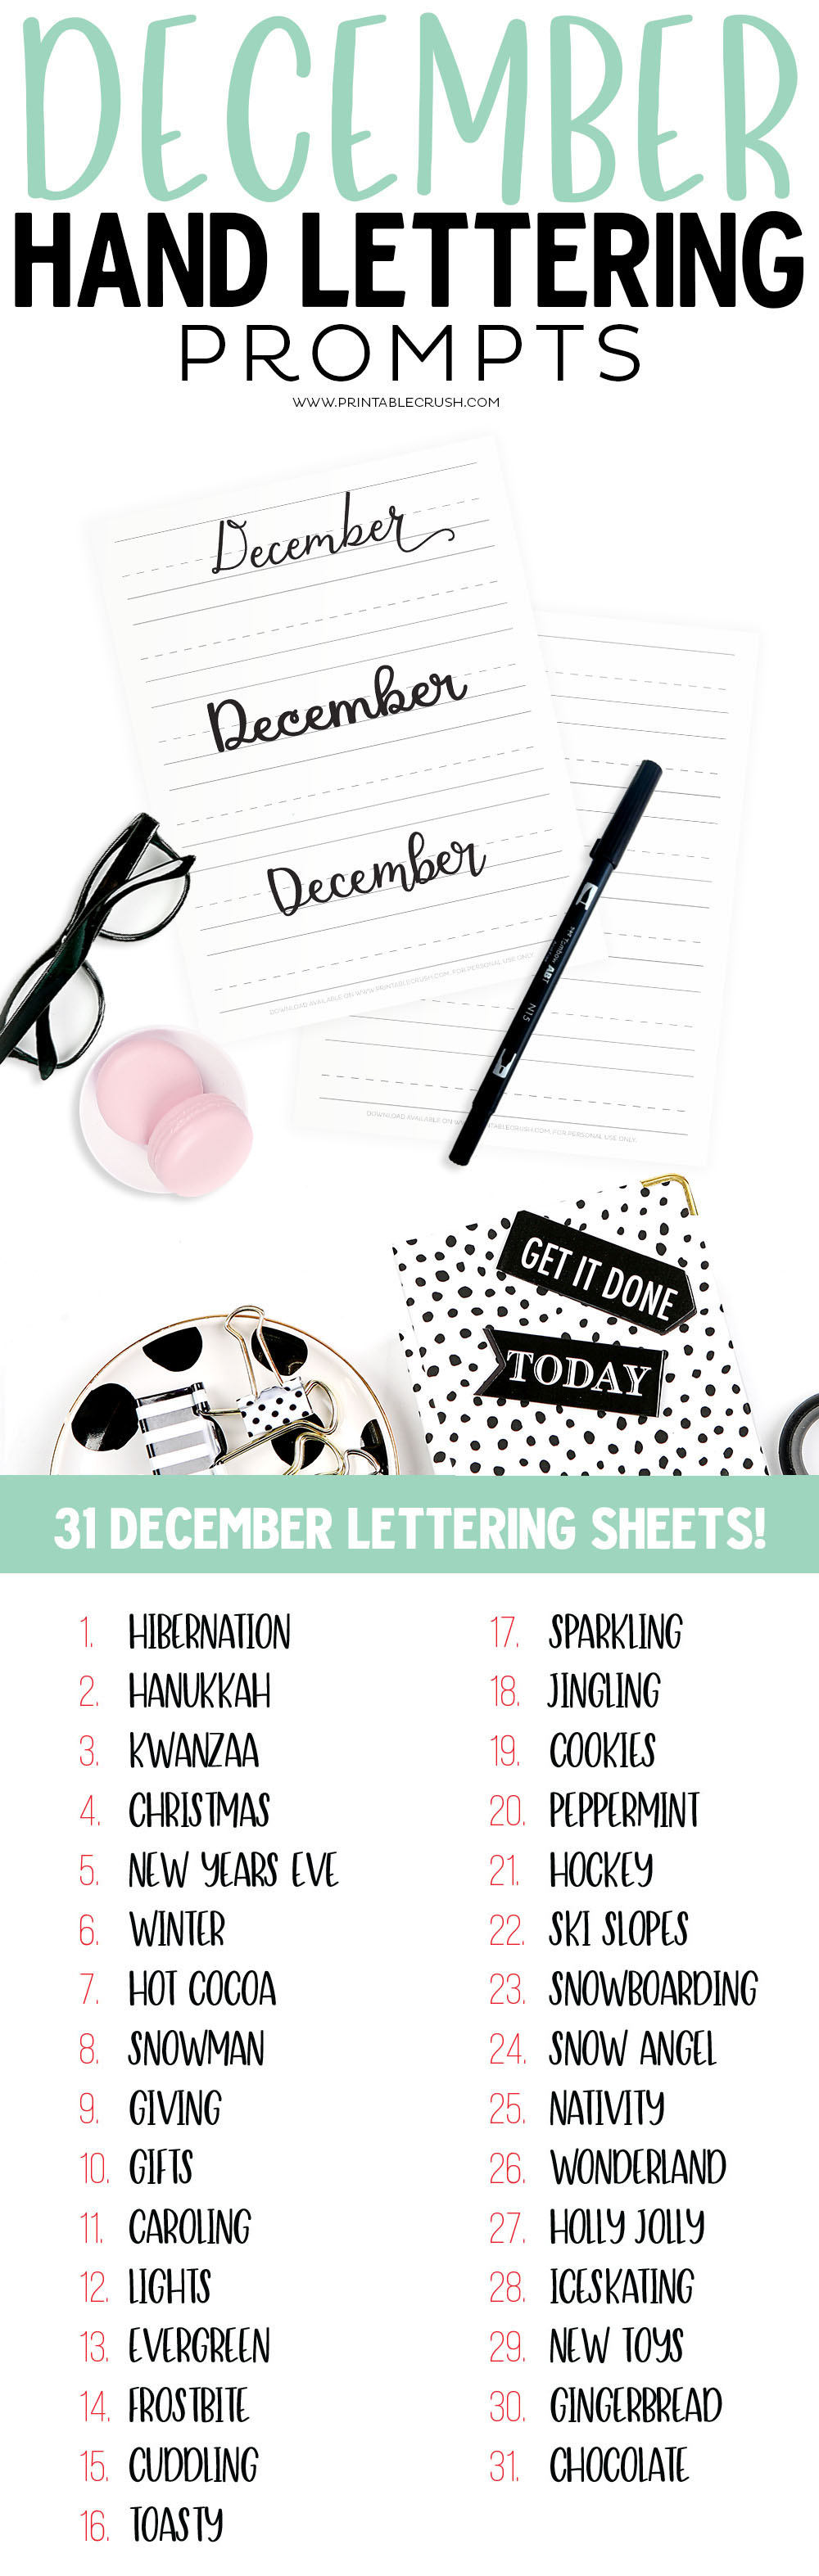 Get 34 December Hand Lettering Worksheets and Prompts FREE and practice daily to improve your hand lettering! #handletteringprompts #decemberprompts #decemberworksheets